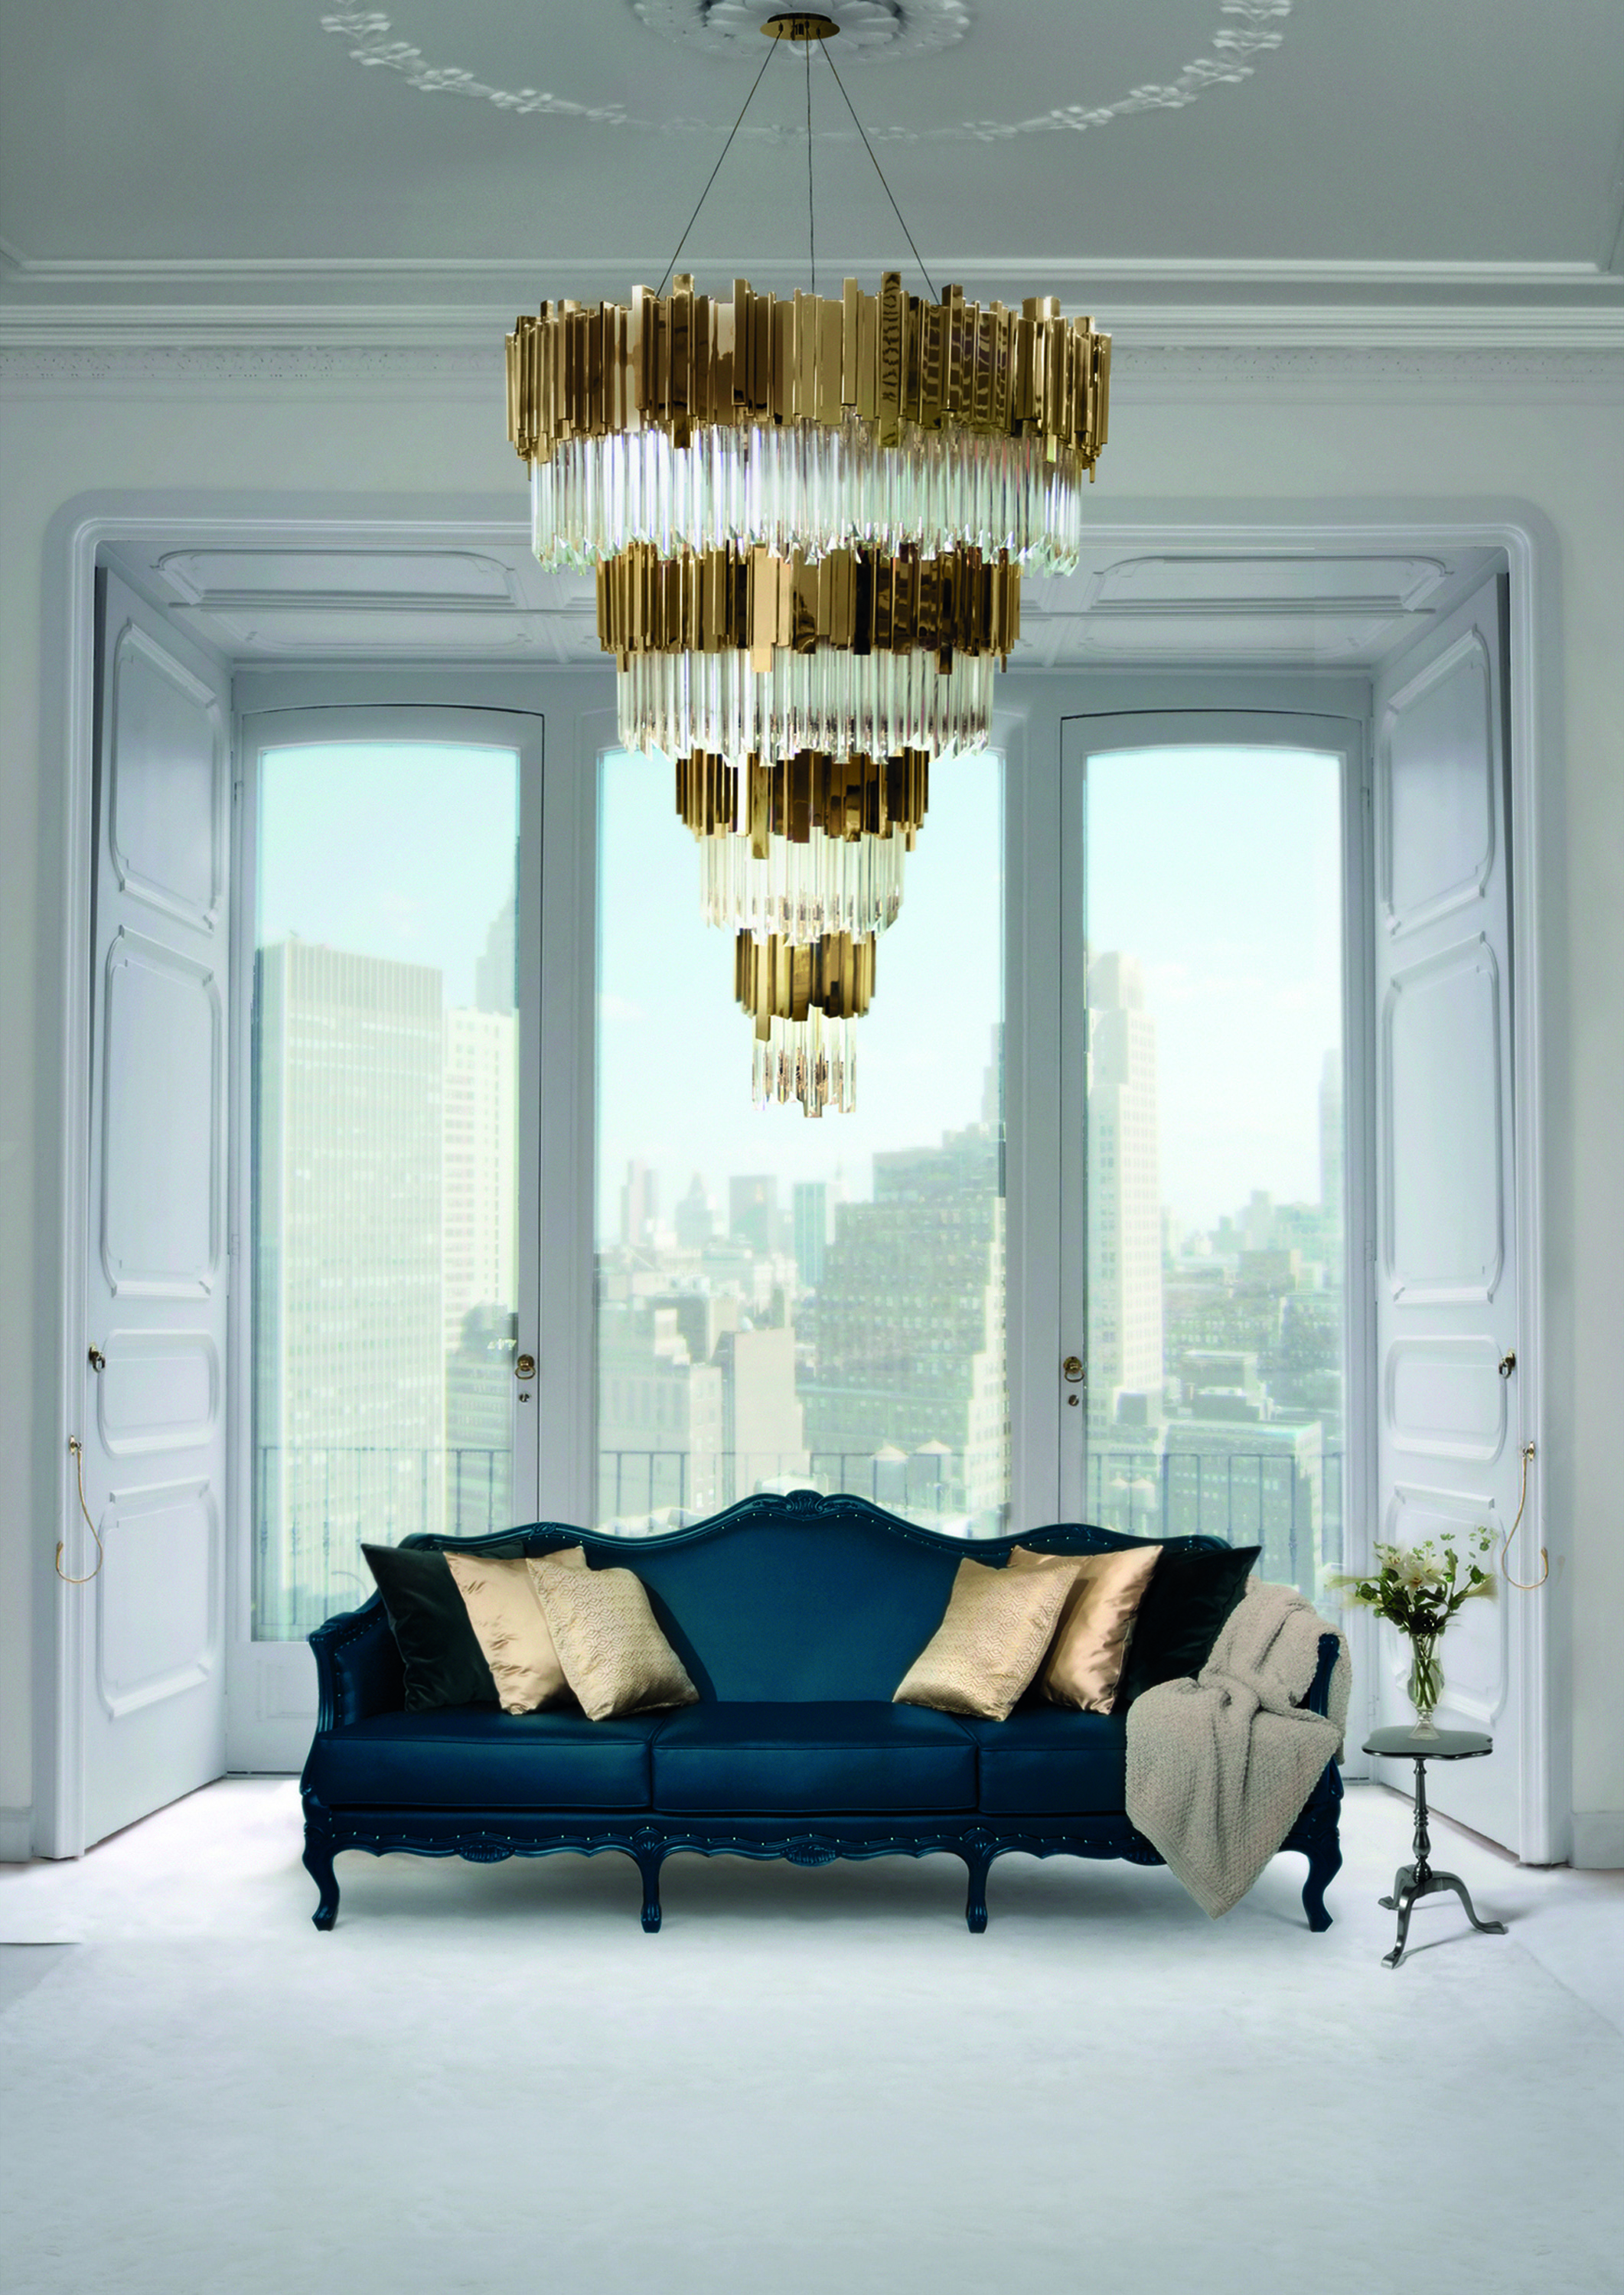 Empire Luxury Chandeliers luxury chandeliers Luxury Chandeliers: Luxxu's selection for splendor in any scenario Empire Chandelier